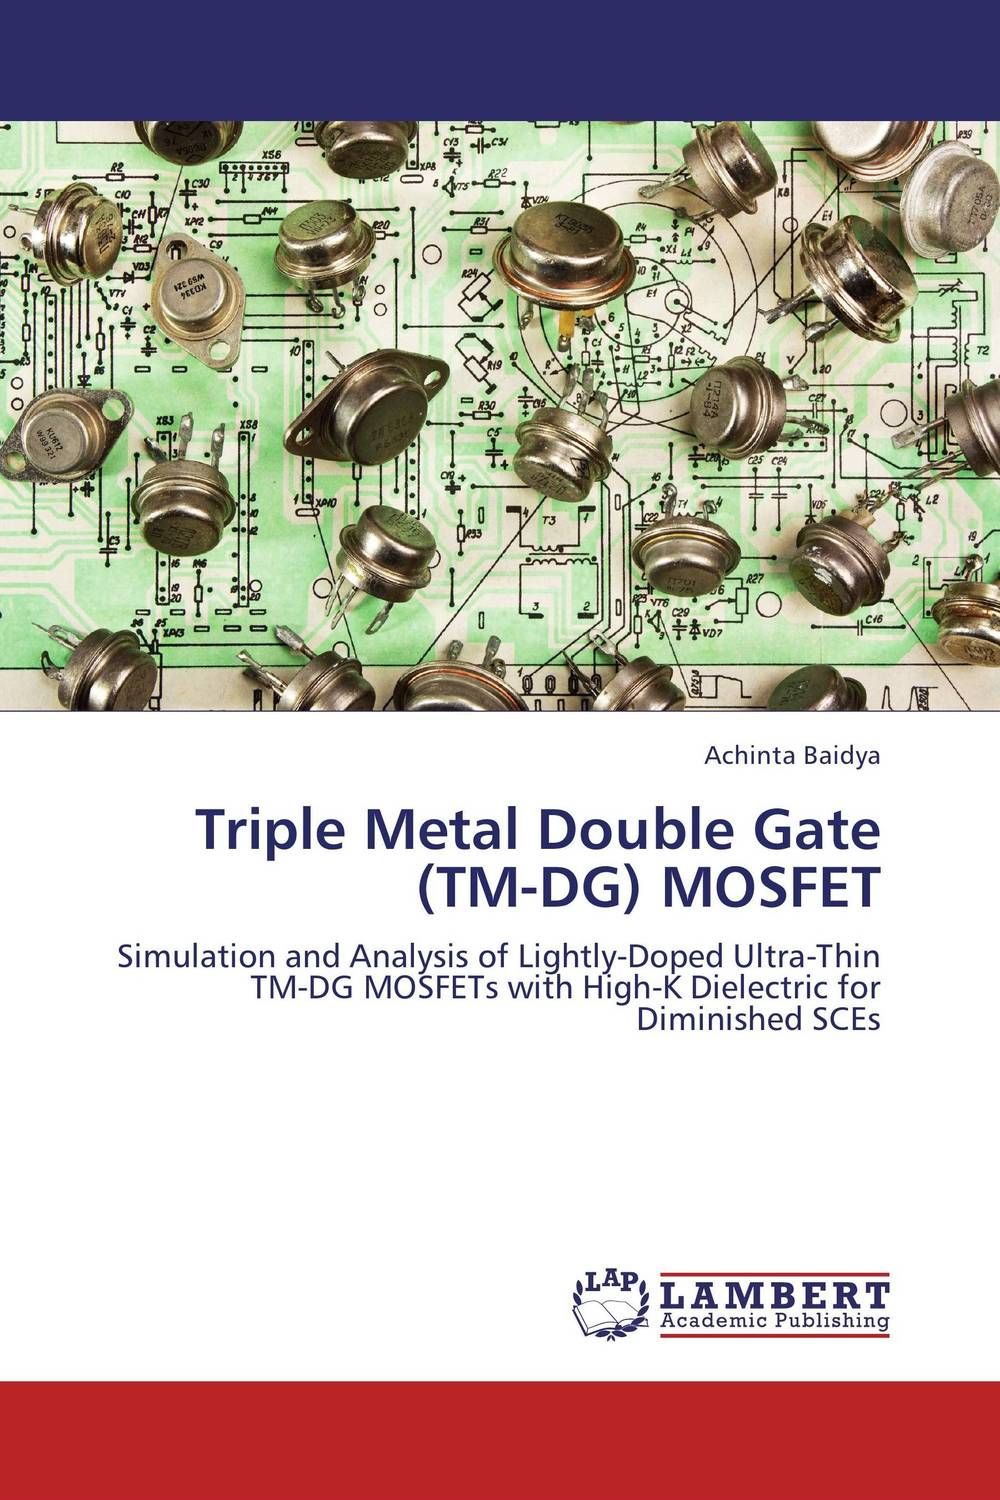 Triple Metal Double Gate (TM-DG) MOSFET triple metal double gate tm dg mosfet